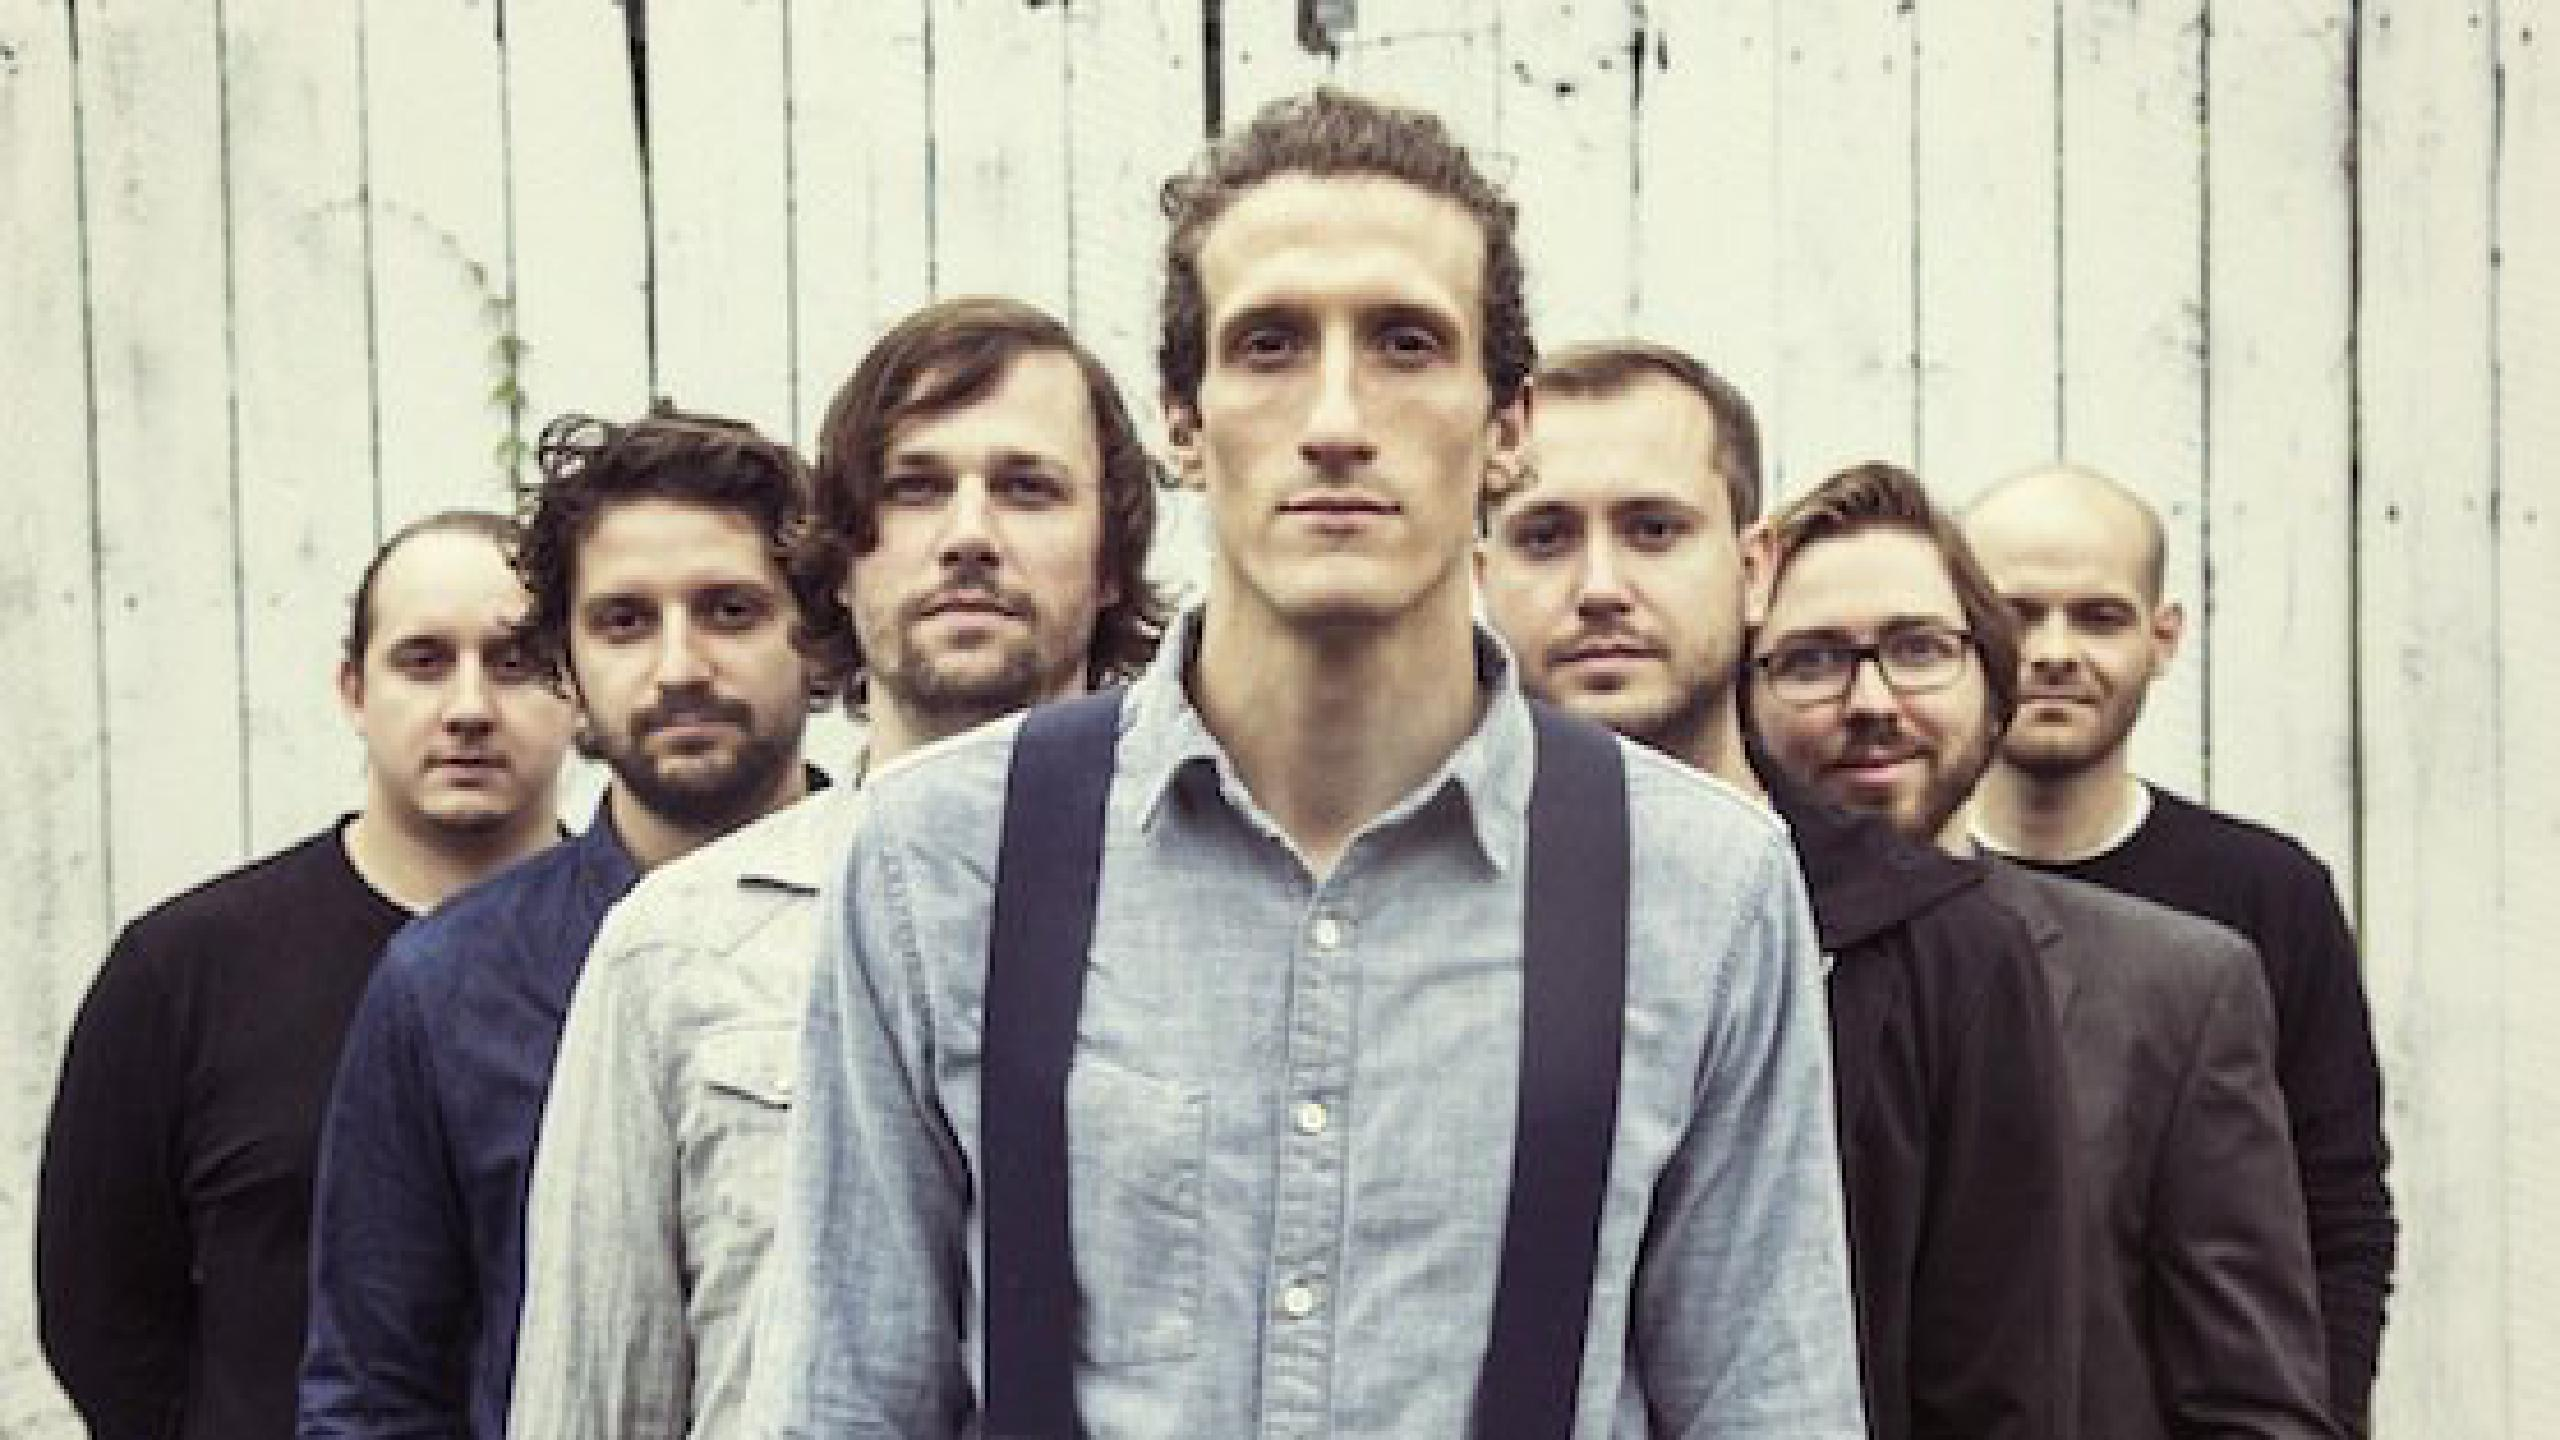 The Revivalists Tour 2020 The Revivalists tour dates 2019 2020. The Revivalists tickets and